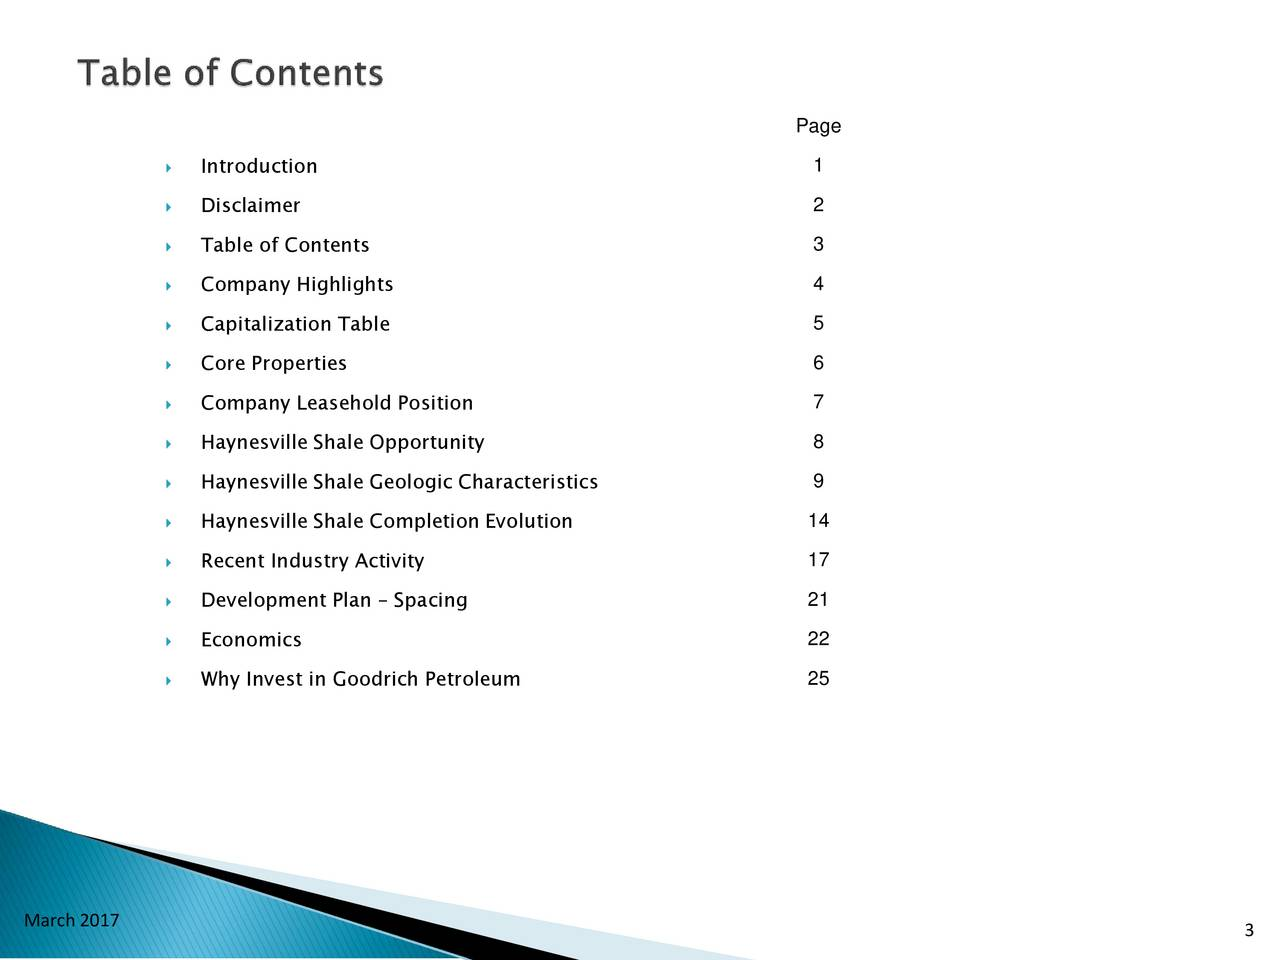 Introduction 1 Disclaimer 2 Table of Contents 3 Company Highlights 4 Capitalization Table 5 Core Properties 6 Company Leasehold Position 7 Haynesville Shale Opportunity 8 Haynesville Shale Geologic Characteristics 9 Haynesville Shale Completion Evolution 14 17 Recent Industry Activity Development Plan  Spacing 21 Economics 22 Why Invest in Goodrich Petroleum 25 March 2017 3